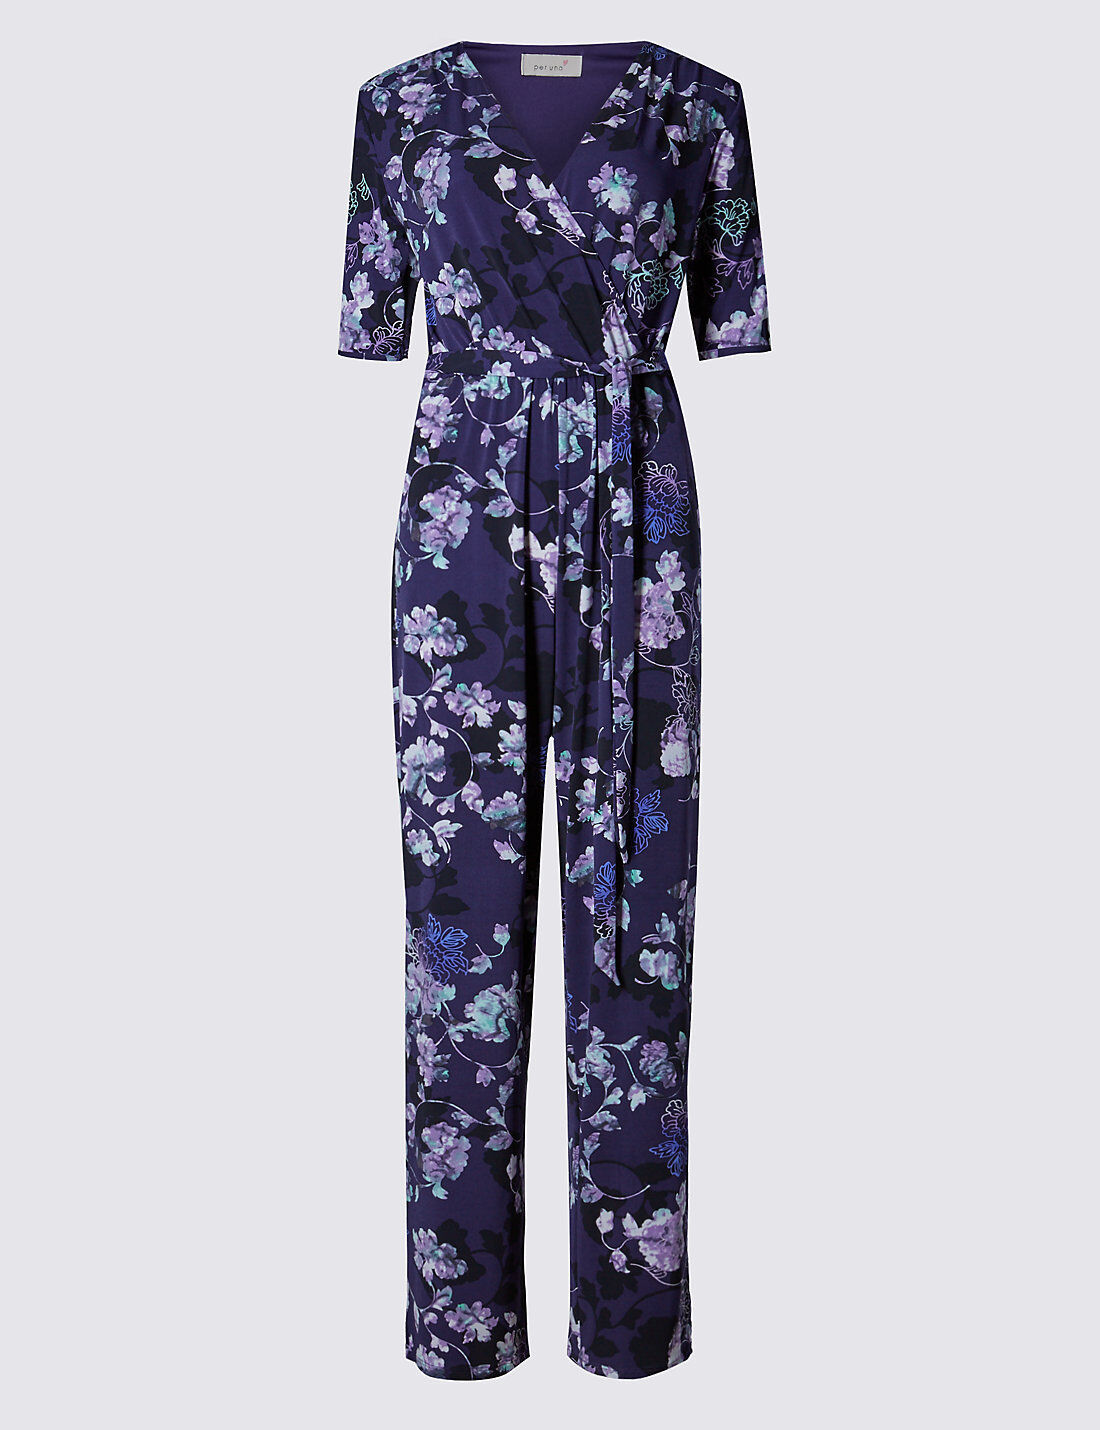 New M&S Per Una Purple Floral Belted Jumpsuit 8 10  20 reg & 8 long